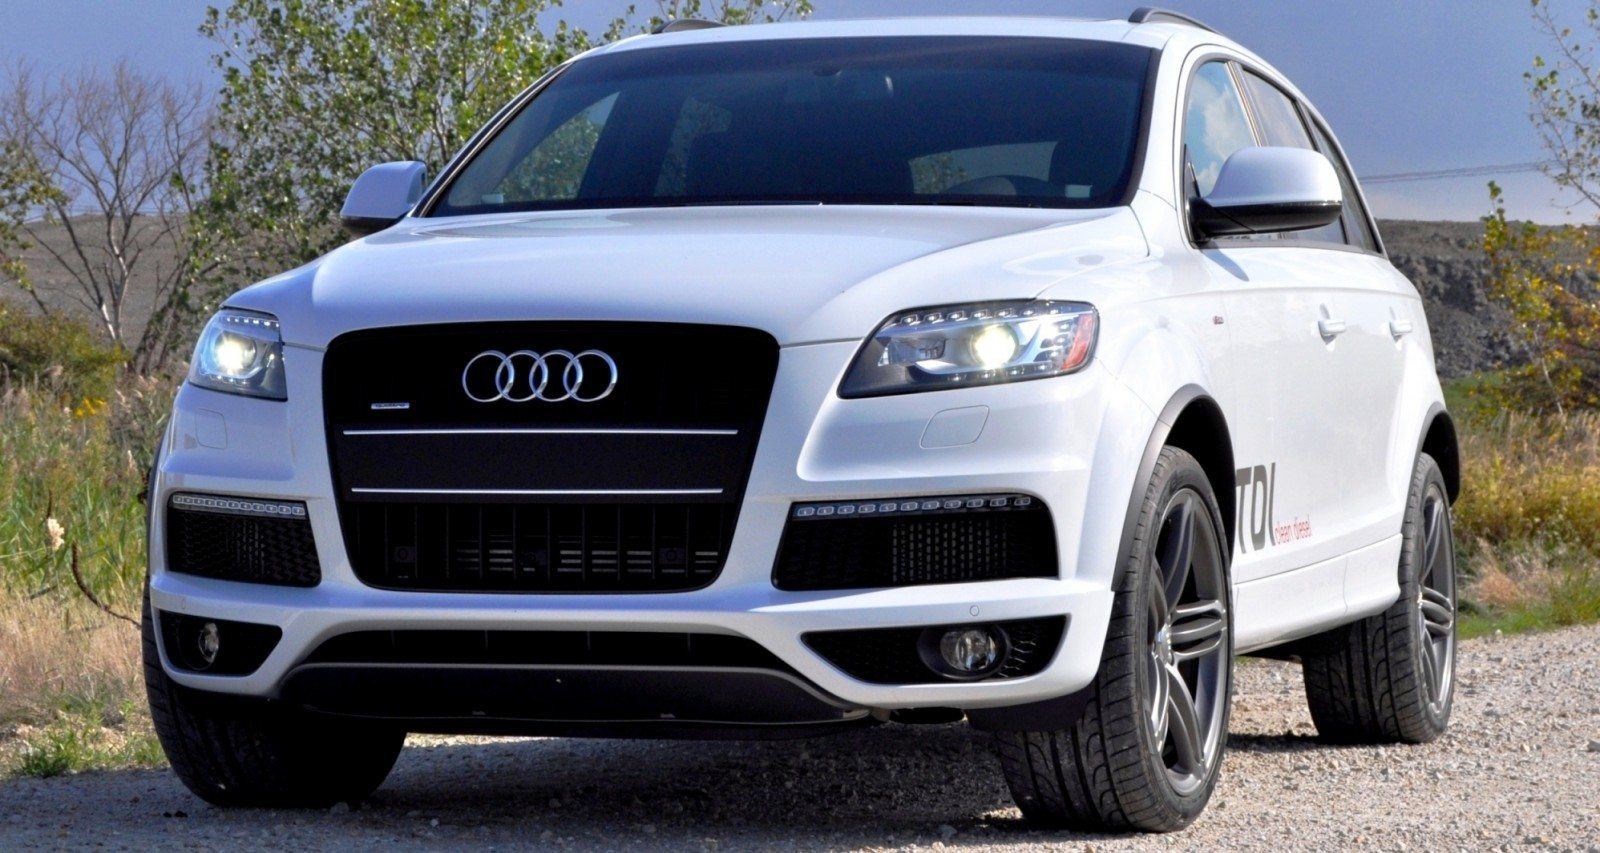 2014 Audi Q7 TDI S-line Plus - Carrara White 13